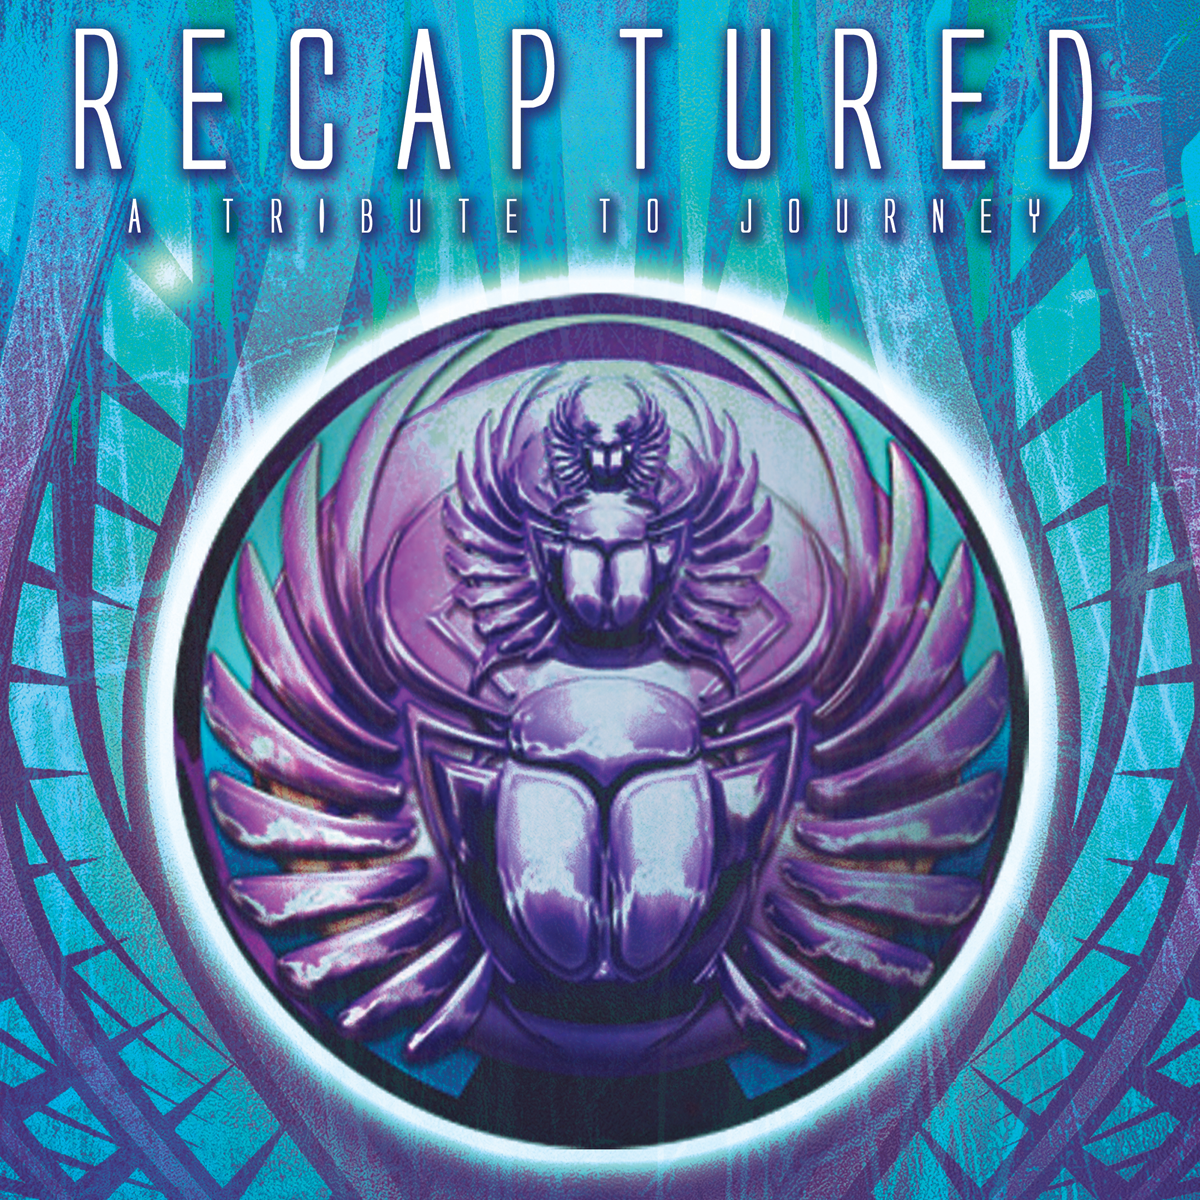 ReCaptured: A Tribute To Journey: Main Image